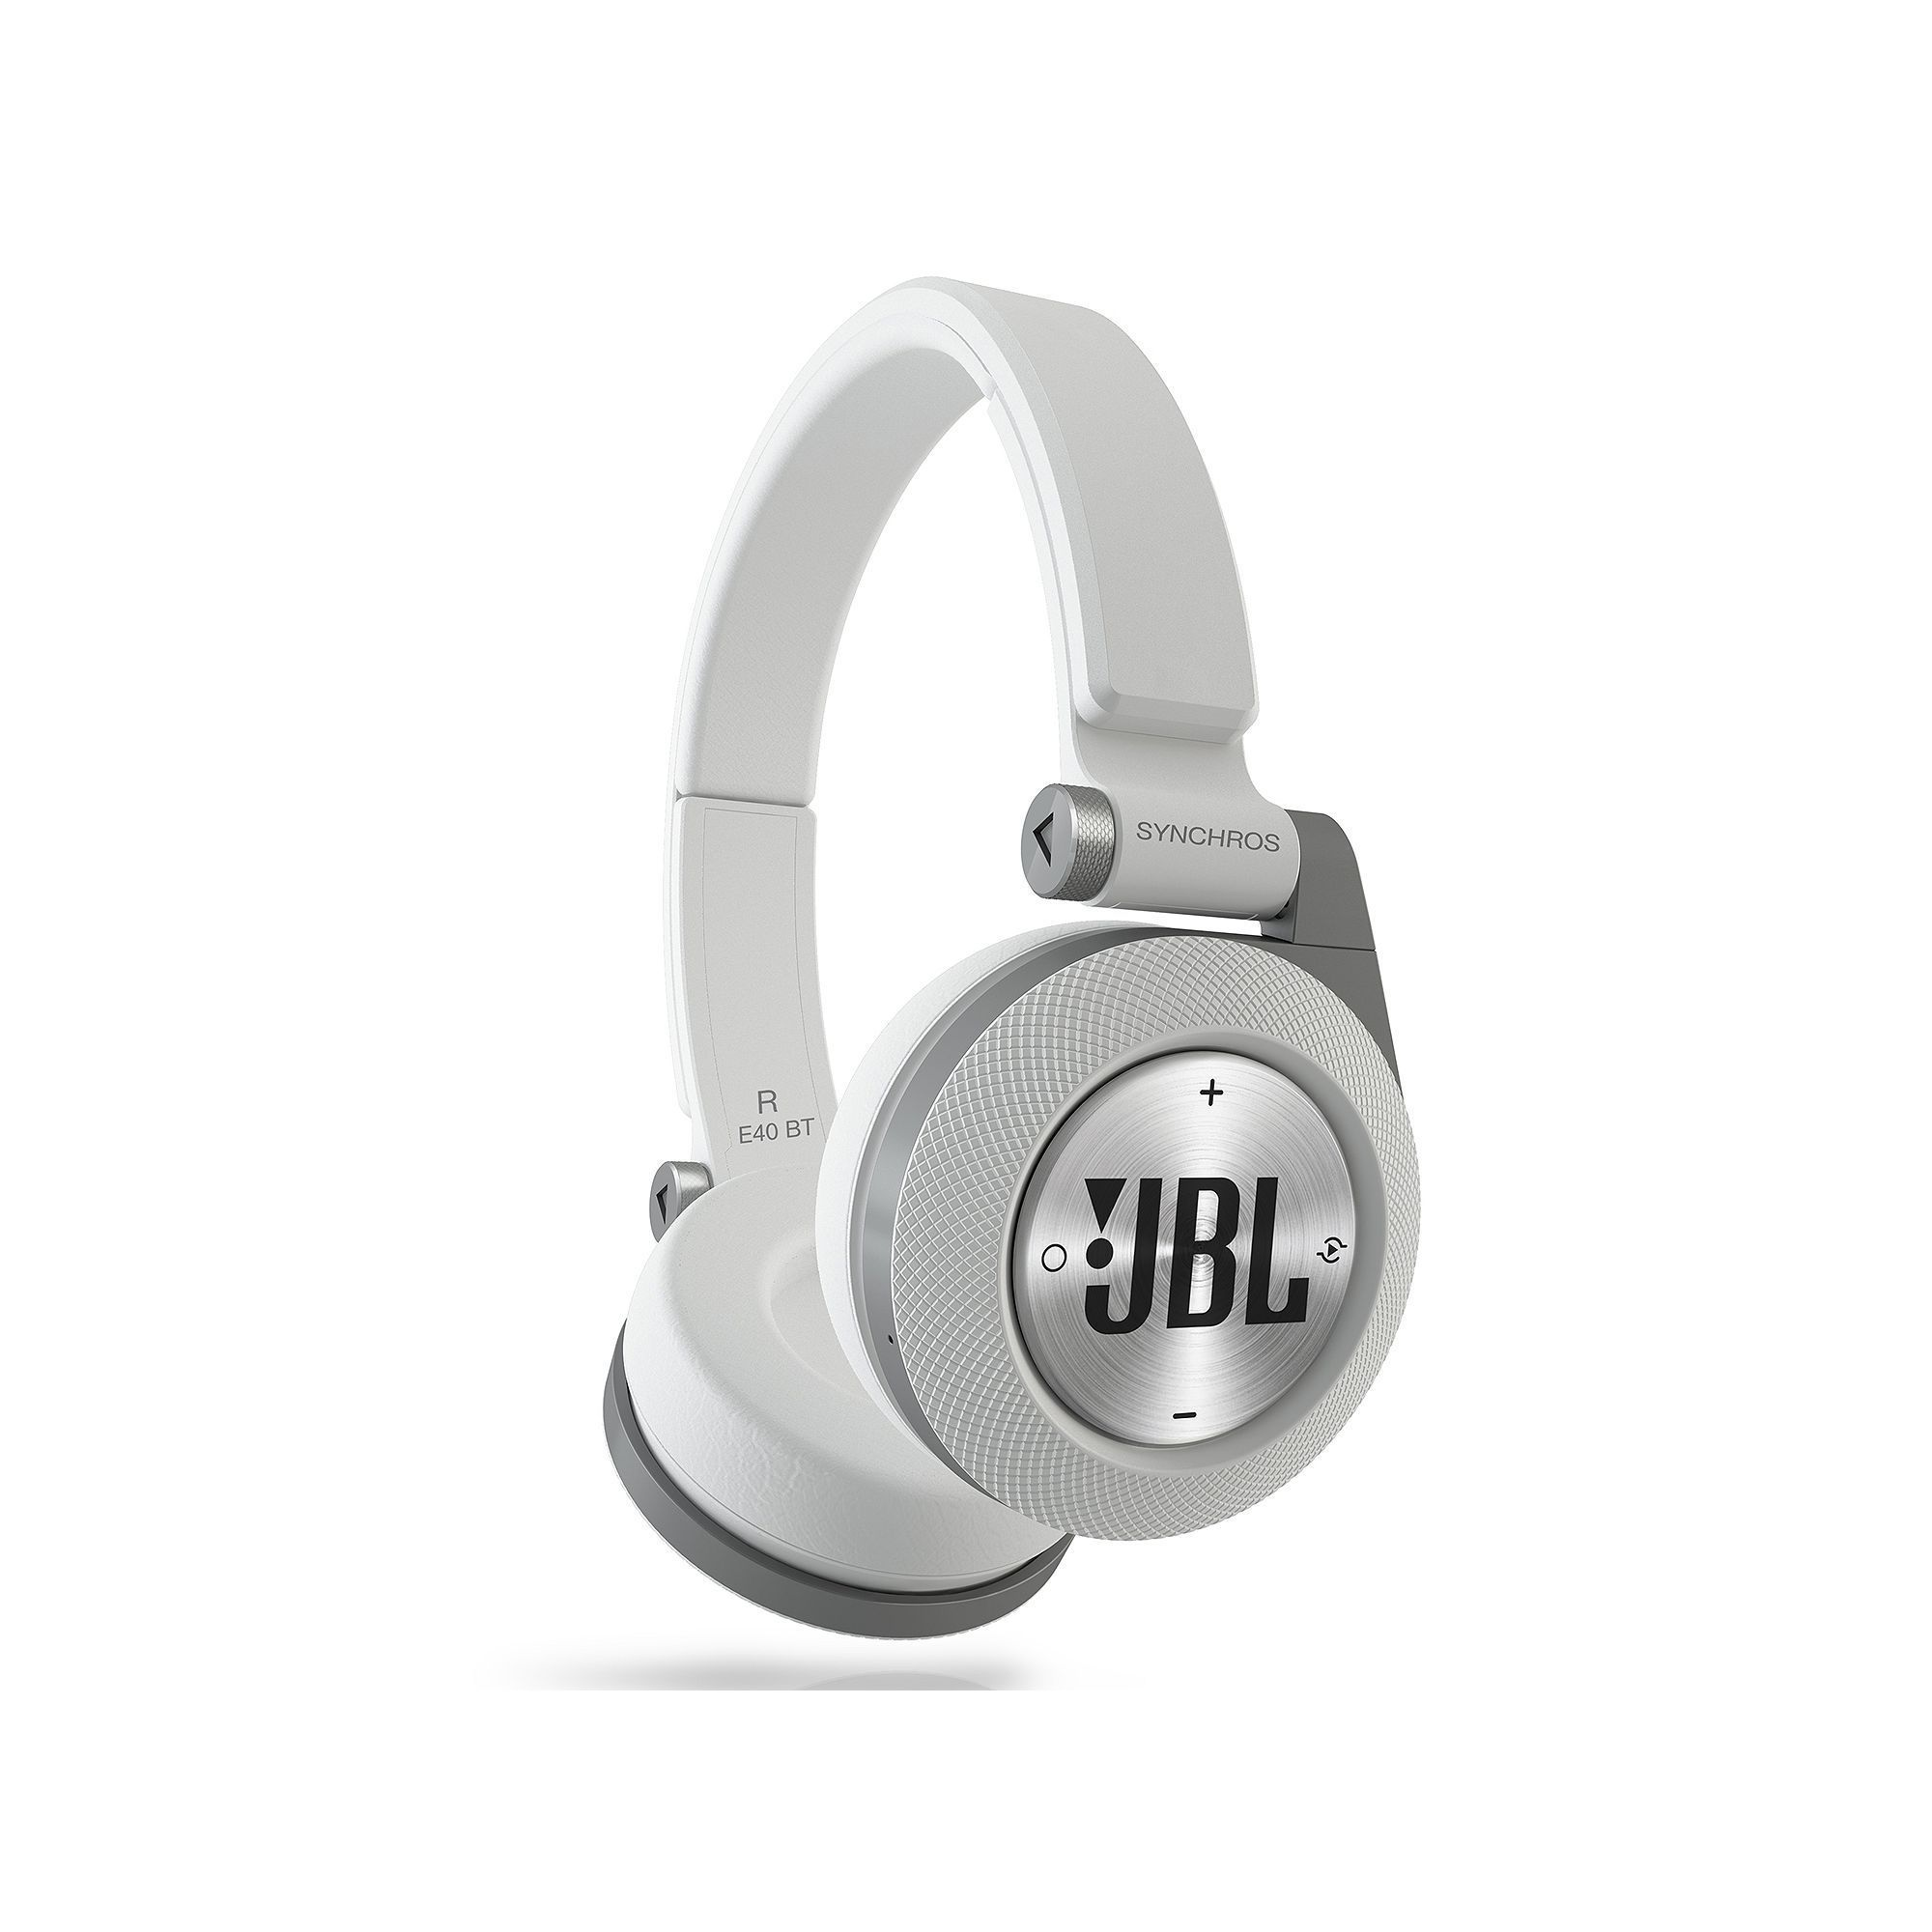 Jbl Synchros On Ear Bluetooth Wireless Headphones Headphones In Ear Headphones Wireless Headphones